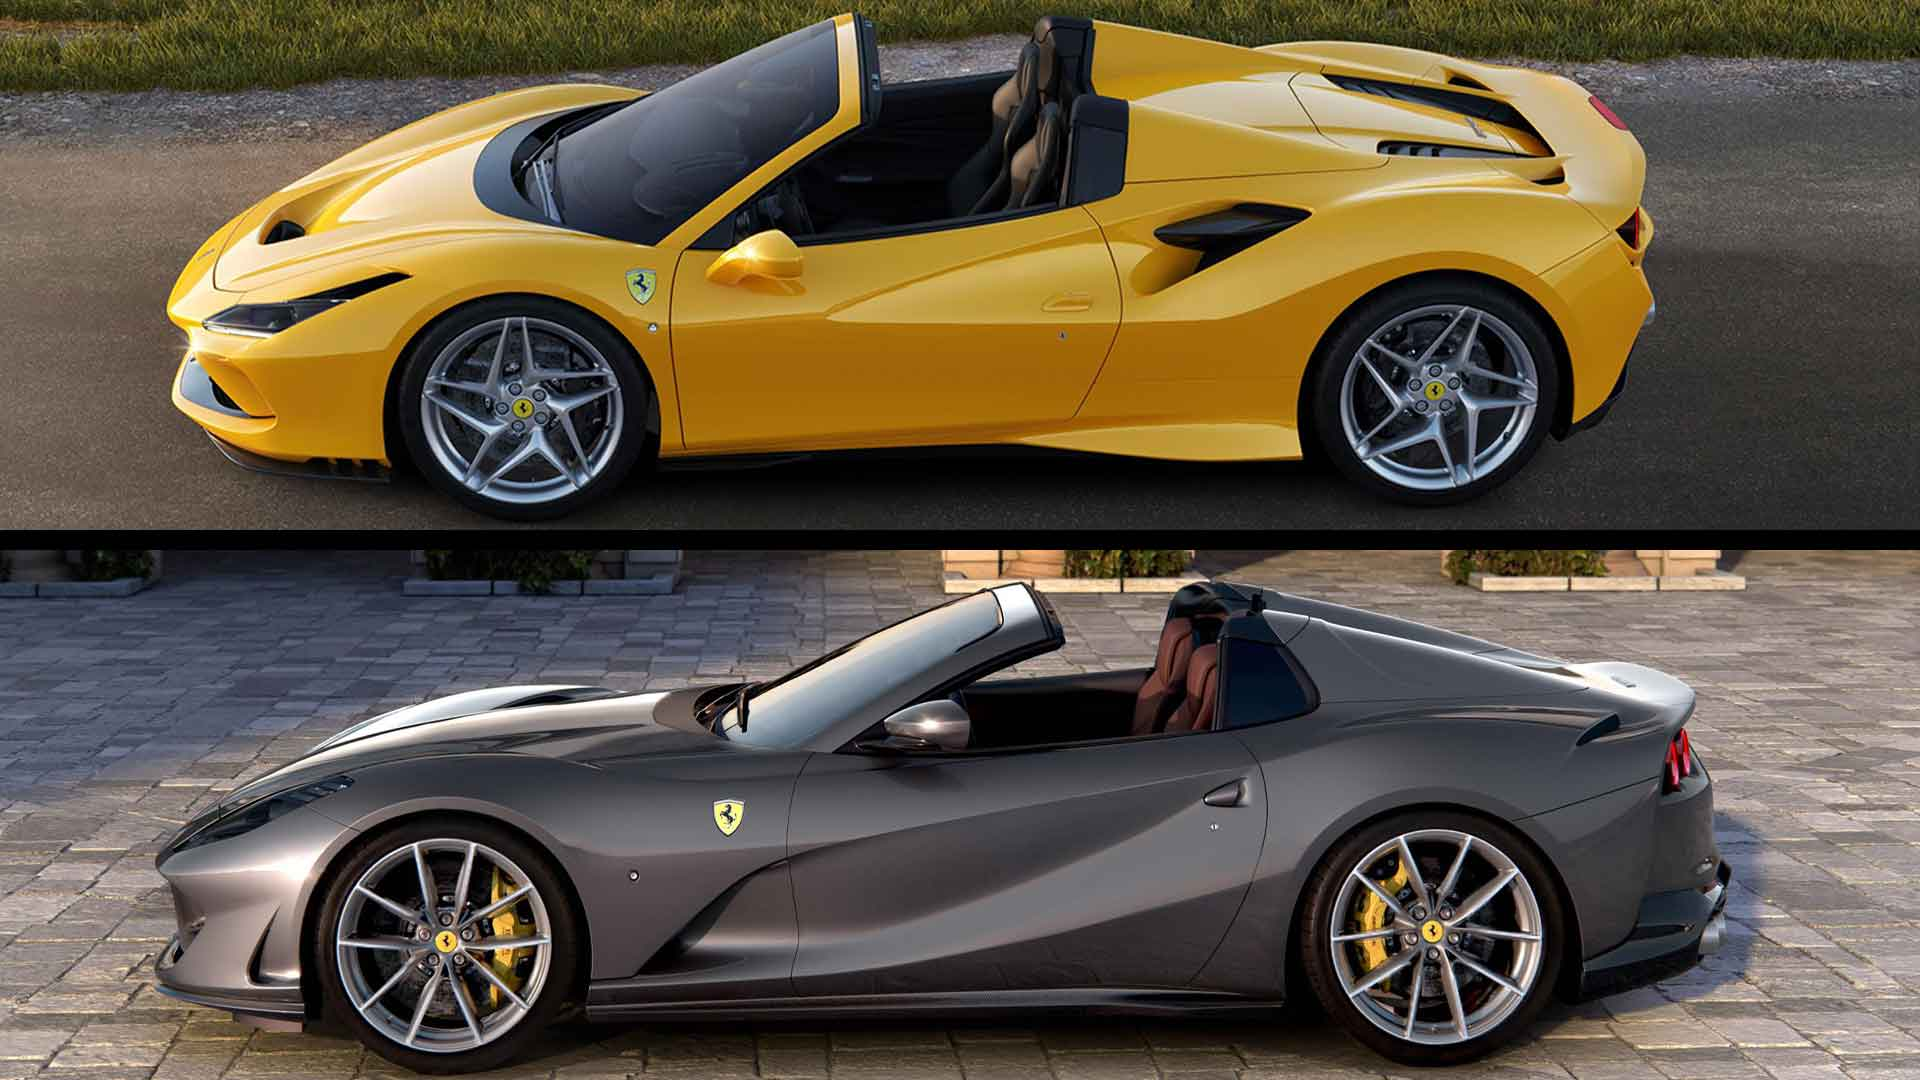 Ferrari Reveals Two New Supercars In One Morning